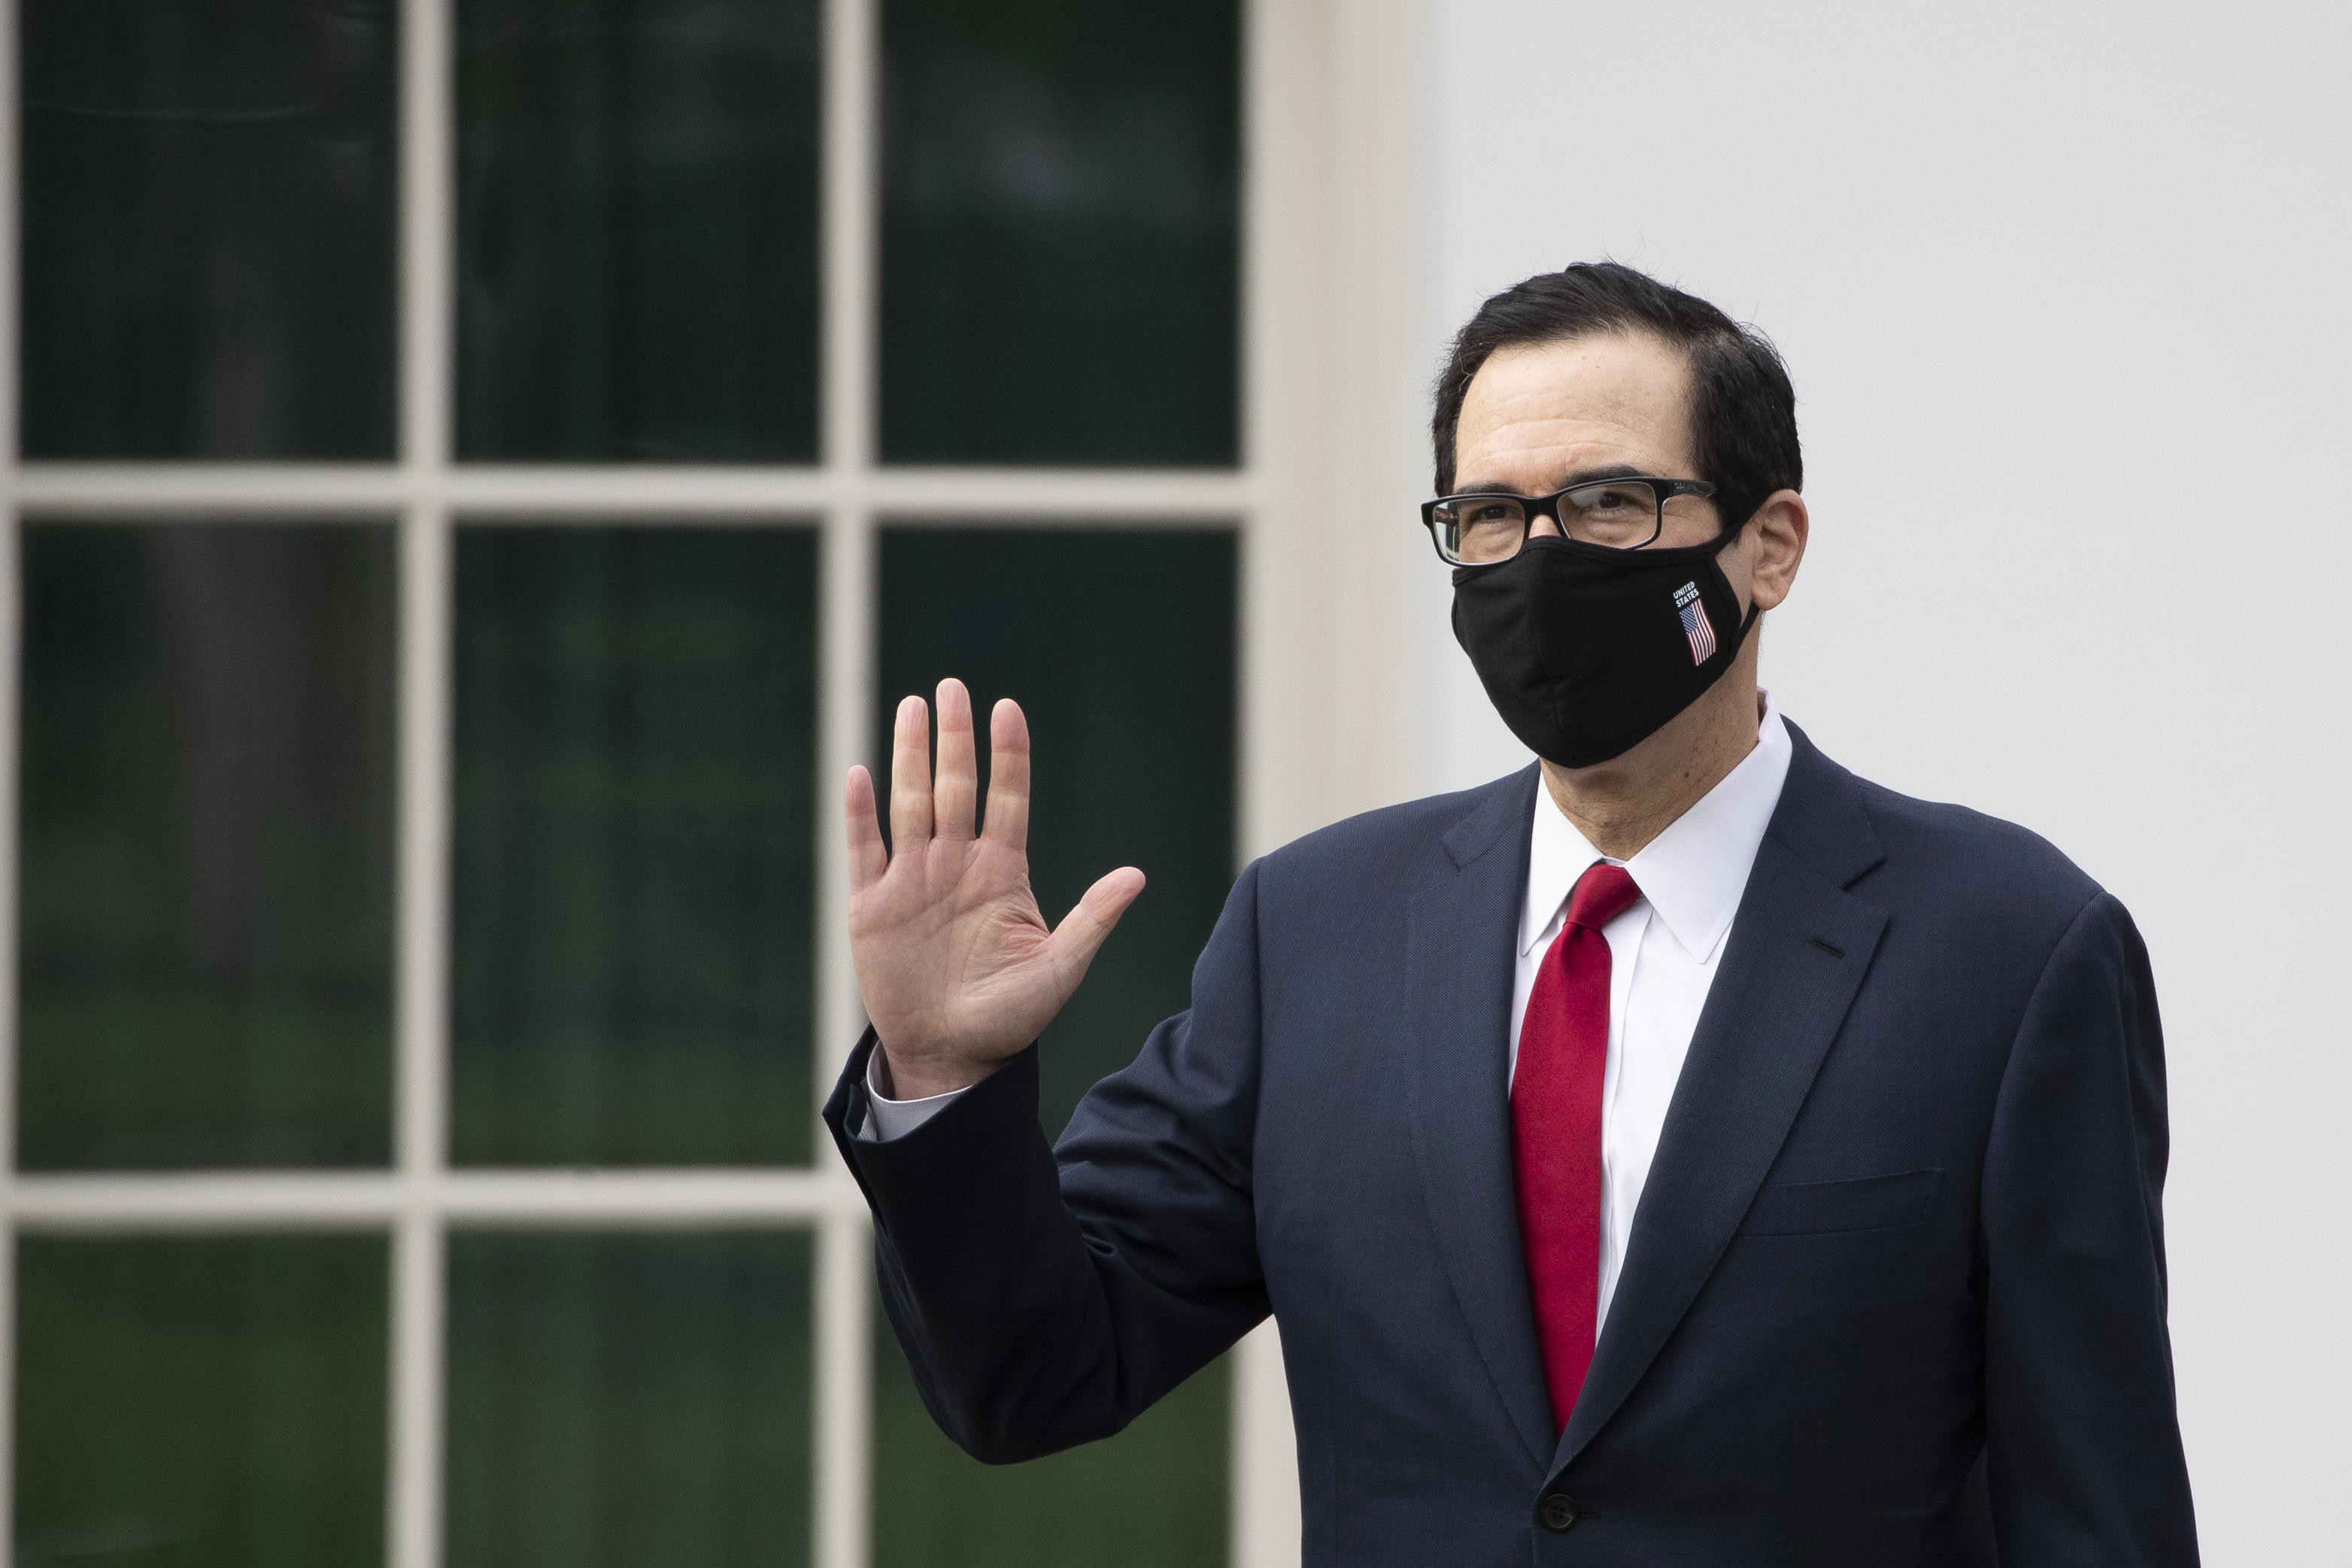 Treasury Secretary Steven Mnuchin wears a mask as he walks on the grounds of the White House, on May 14, 2020, in Washington.